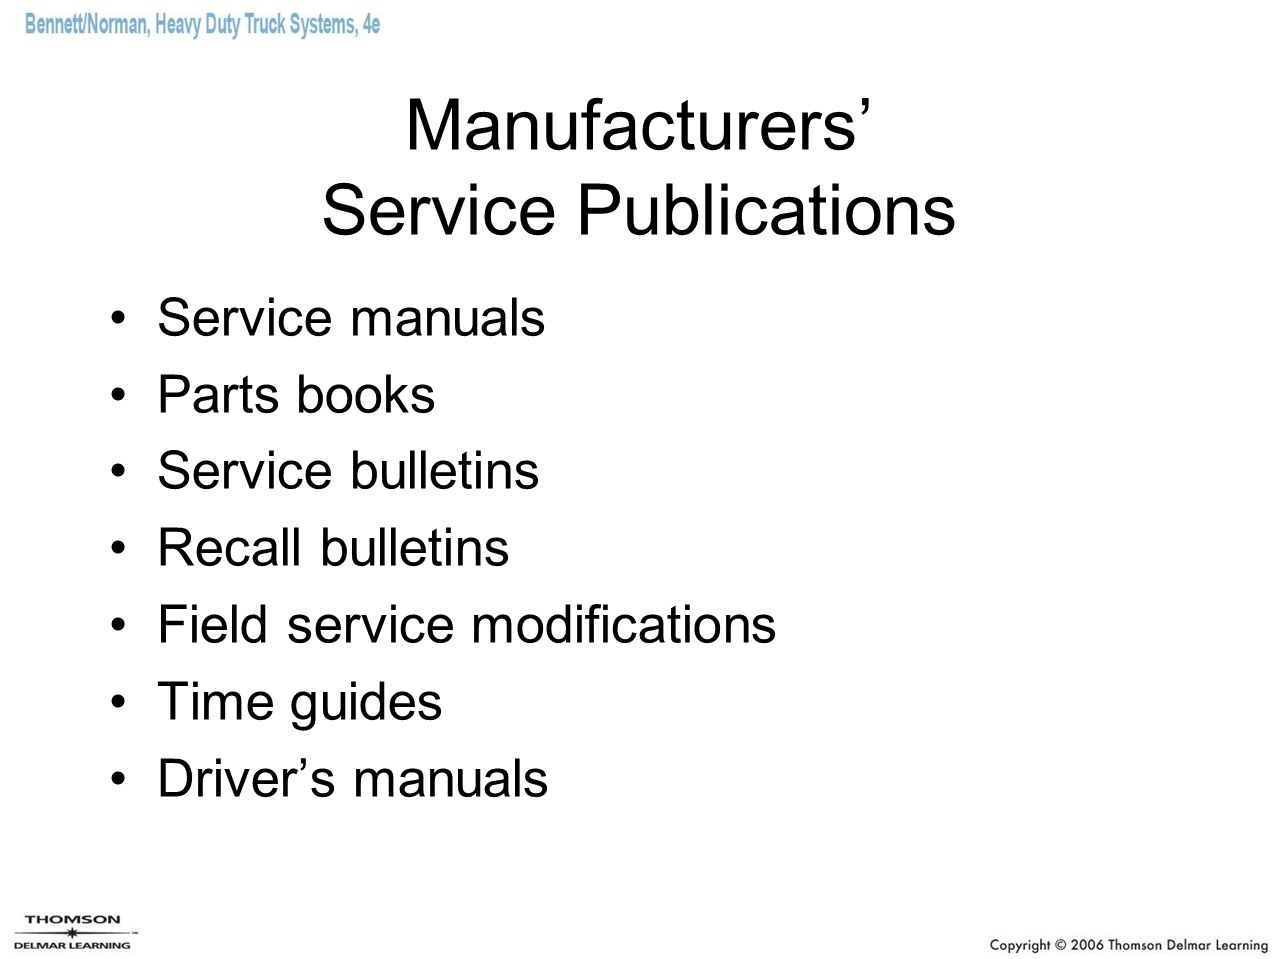 Manufacturers' Service Publications